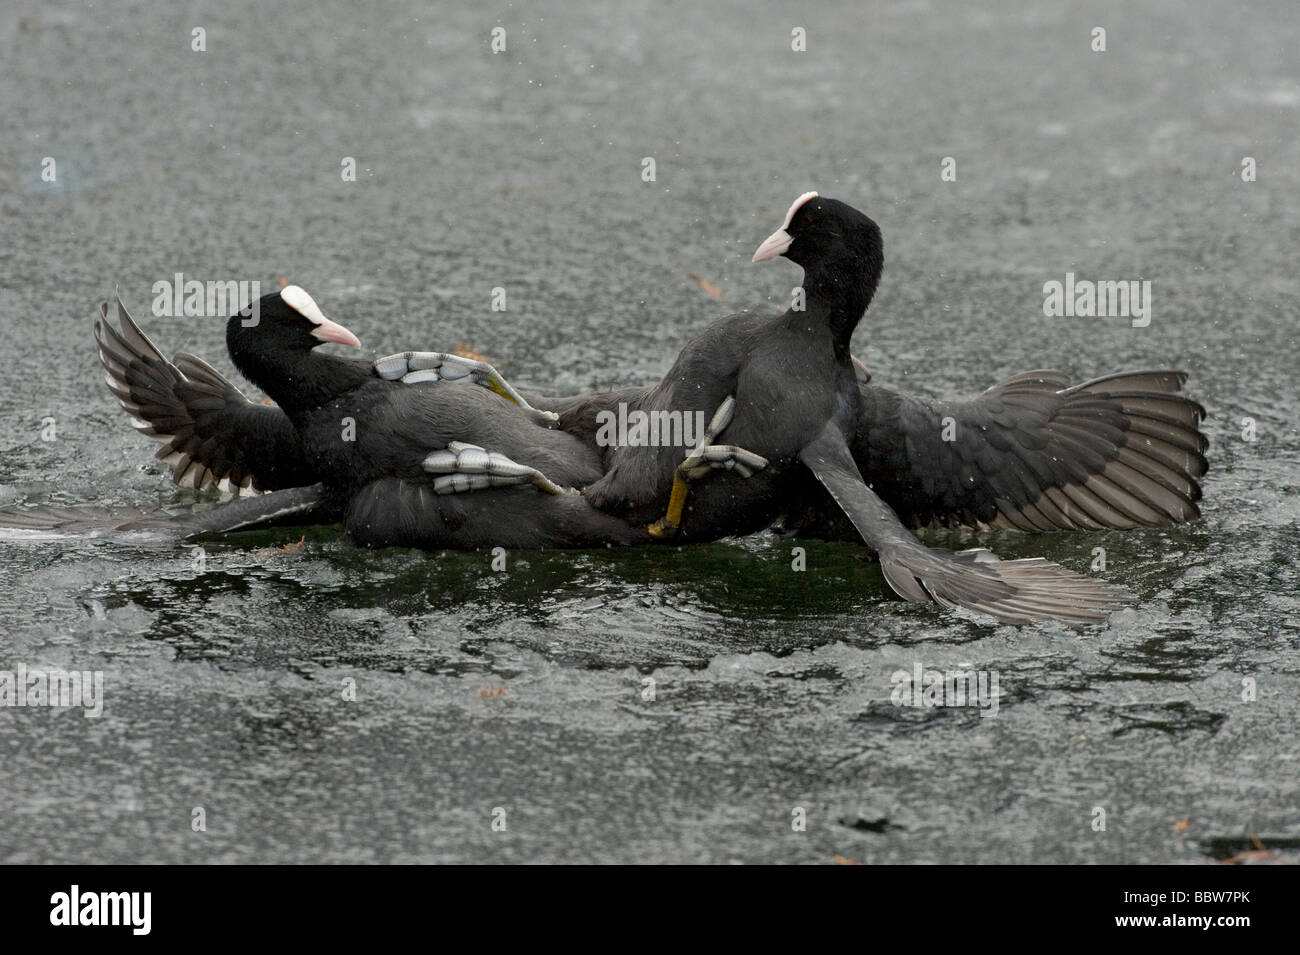 Coots Fulica atra fighting on ice in winter Stock Photo